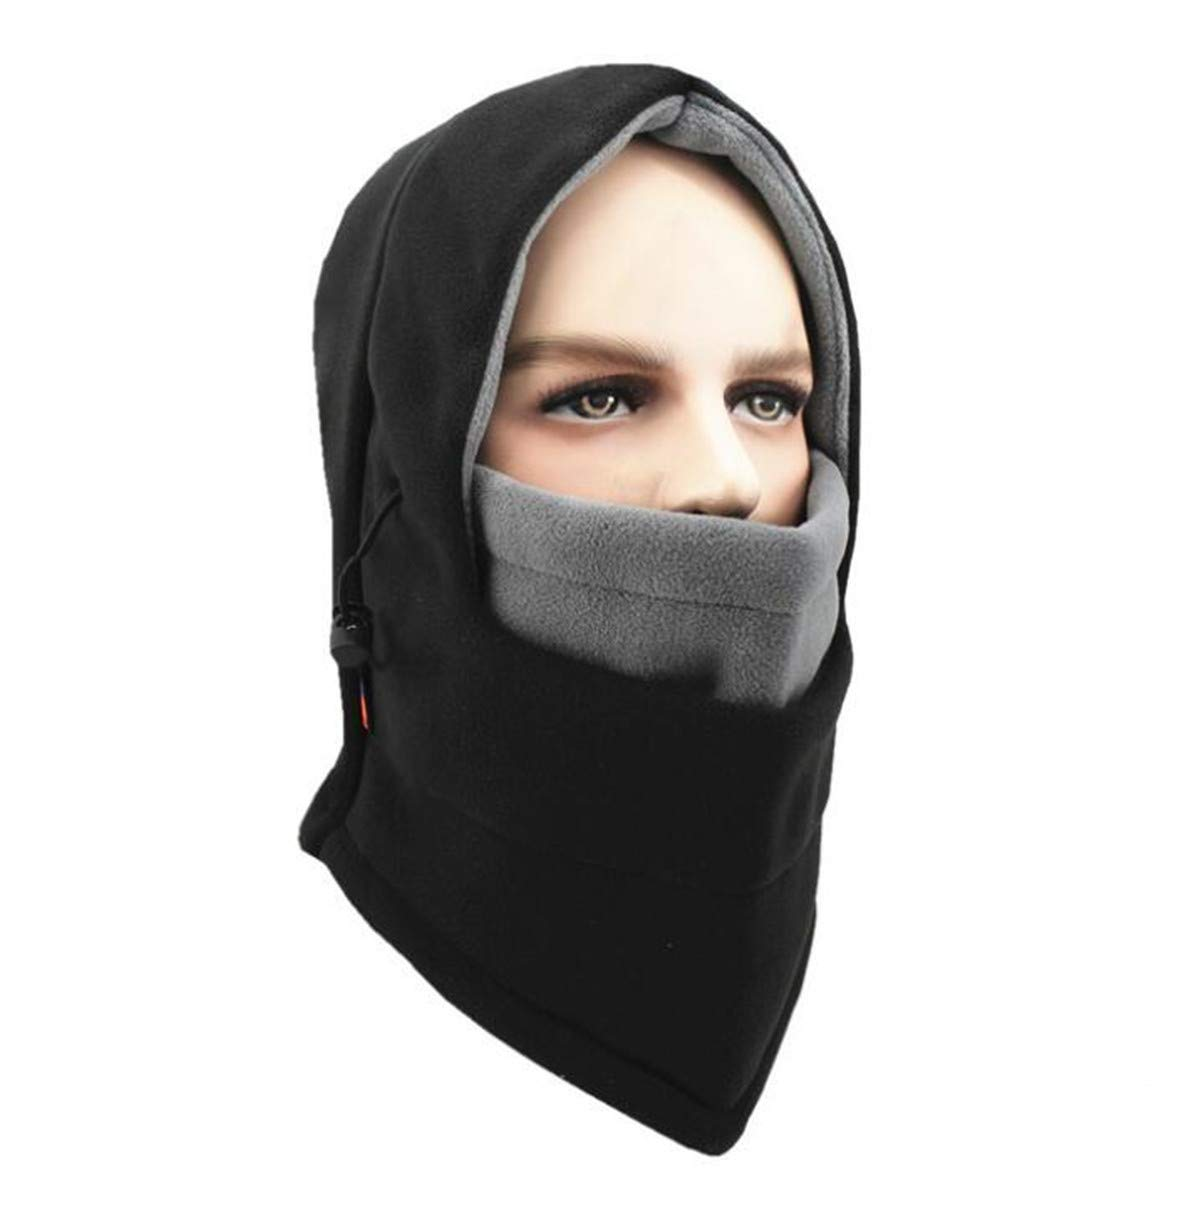 Homieco Sturmhaube Winddicht Ski Gesichtsmaske Männer Frauen Warme Fleece Motorrad Winter Hut Hood Outdoor Sports